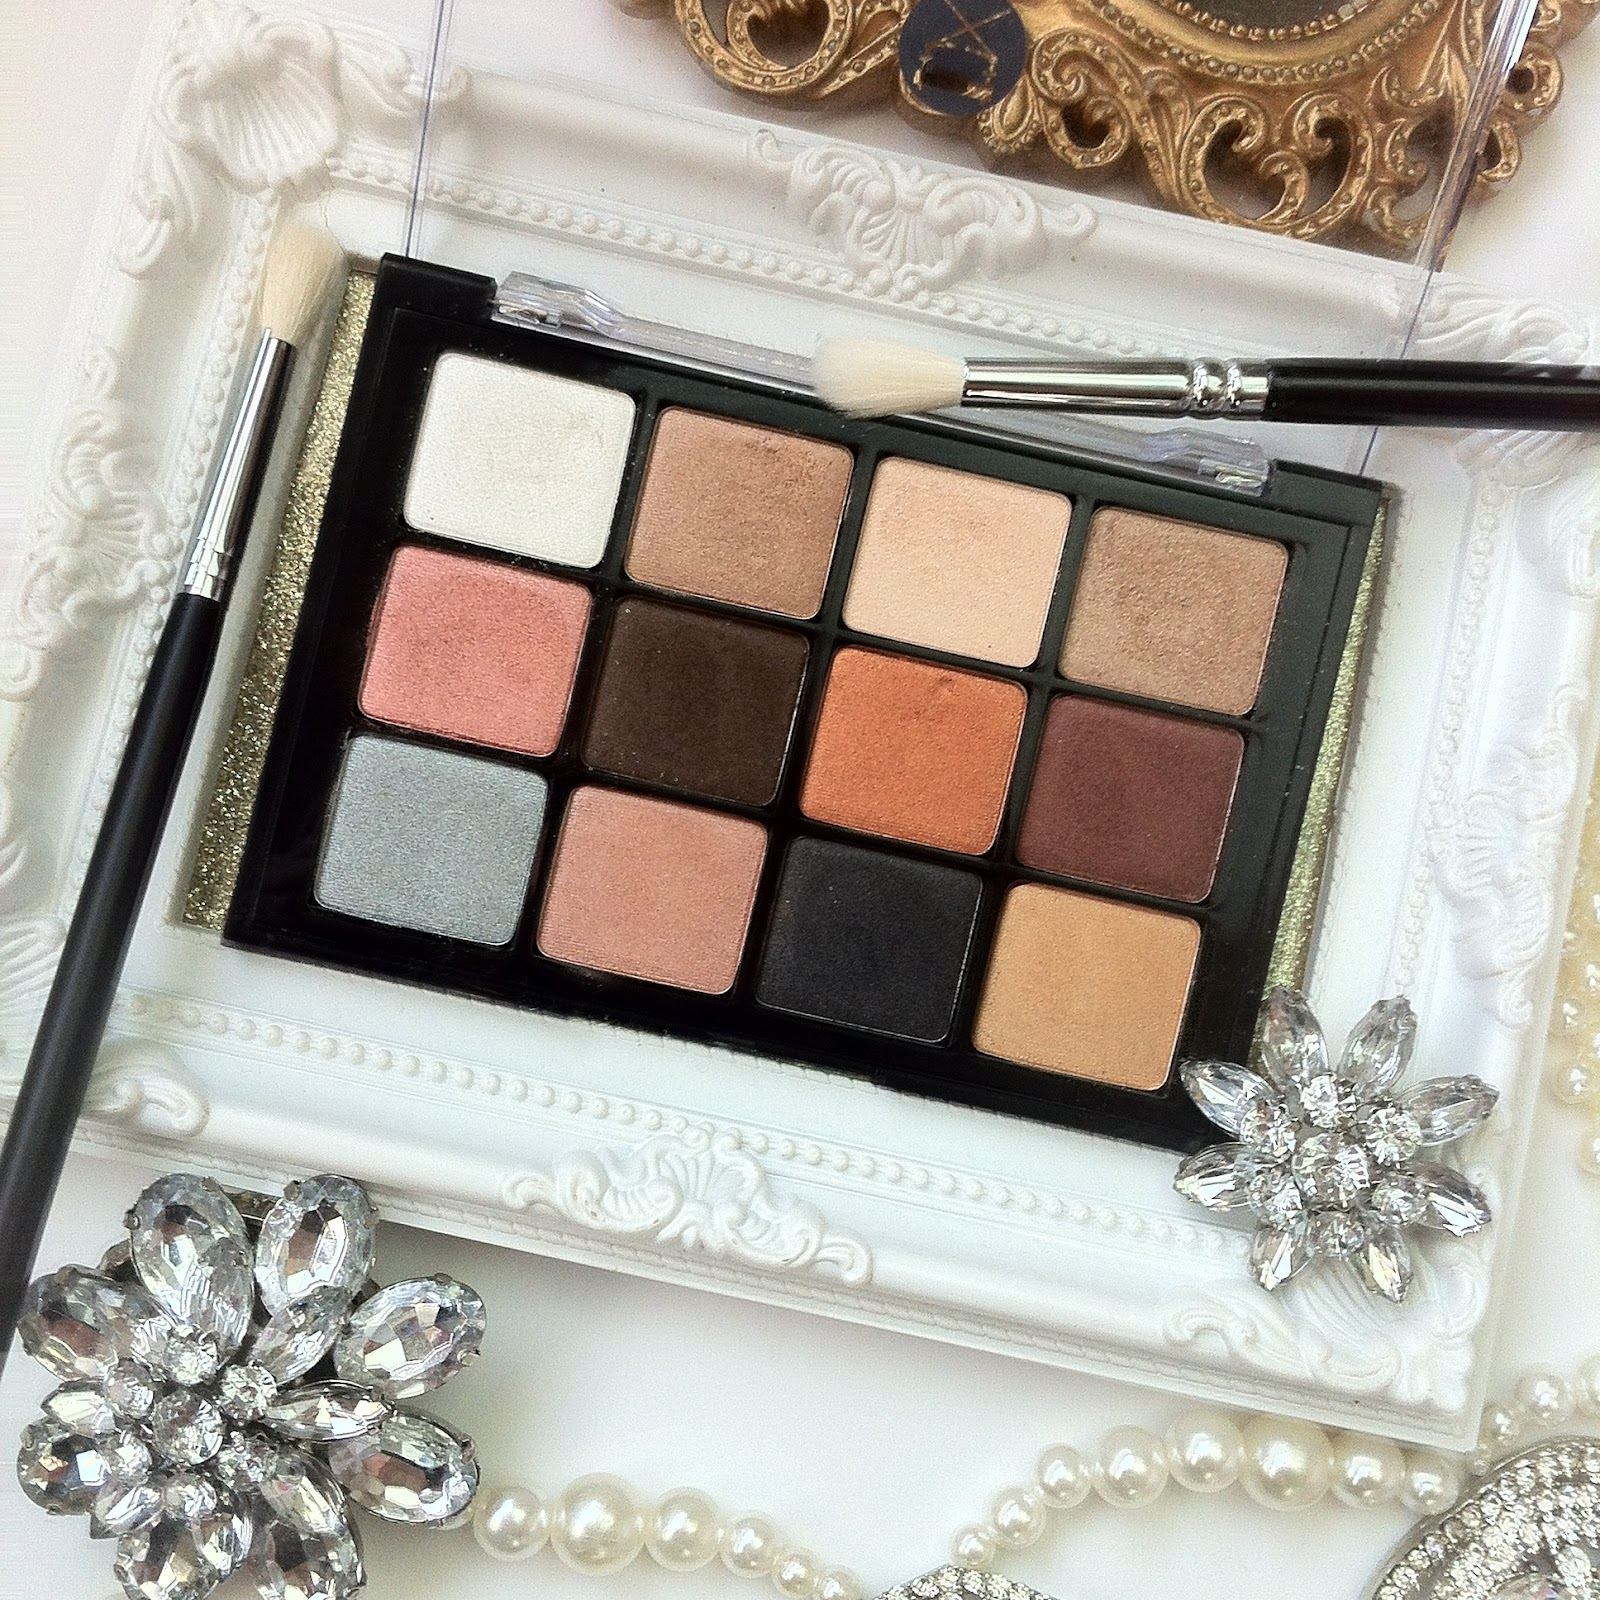 Jamey Lynn Loves Viseart Sultry Muse Palette Review Swatches 06 Paris Nudes Has By Far Become One Of My Favourite Eyeshadow Brands And I Think It Is Fair To Say That Have Tested A Lot Eyeshadows From Wide Variety